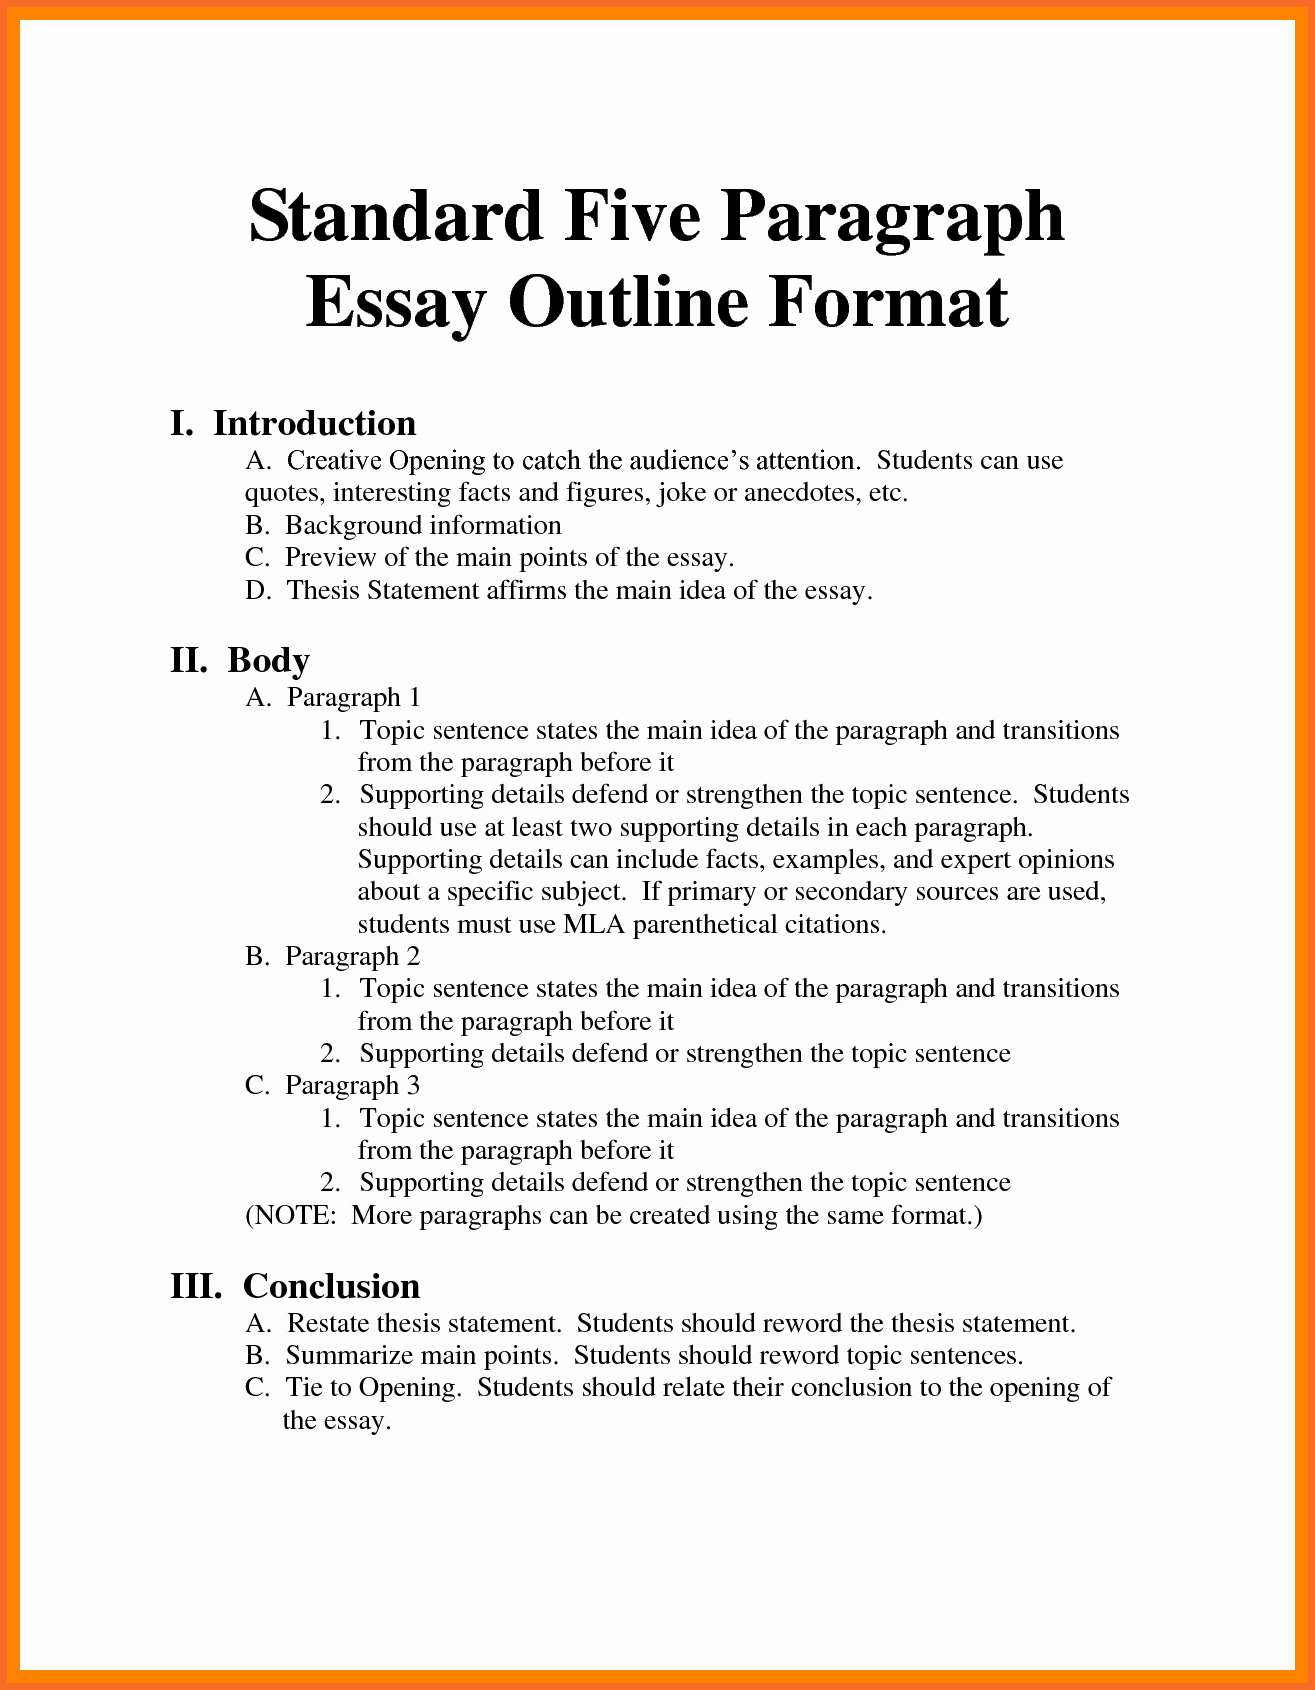 Research Paper In Mla format Lovely Sample Outline Mla format Research Paper Bamboodownunder